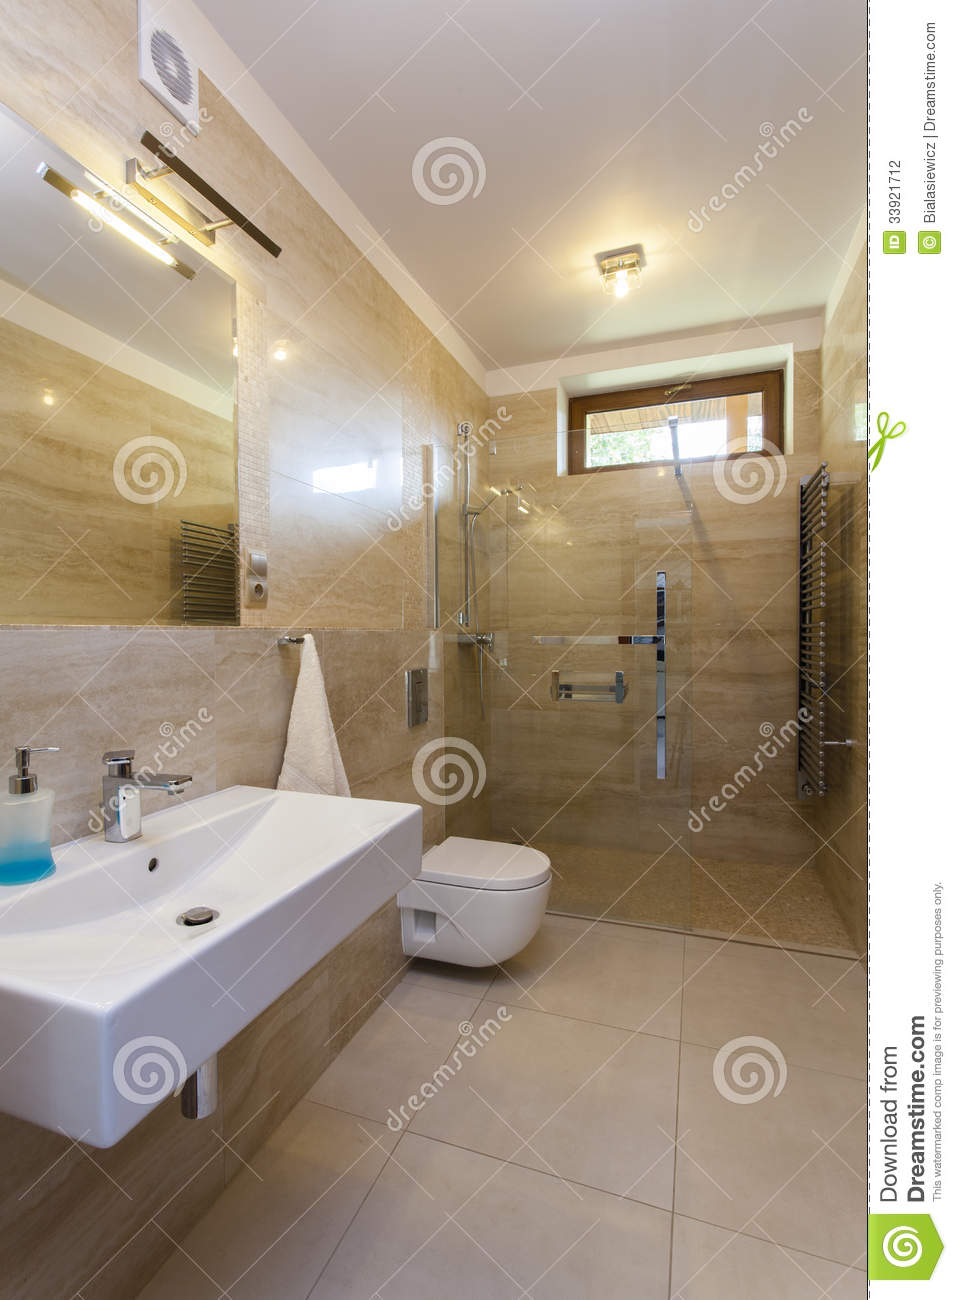 Salle De Bains De Travertin Photo stock - Image du miroir, bathroom ...